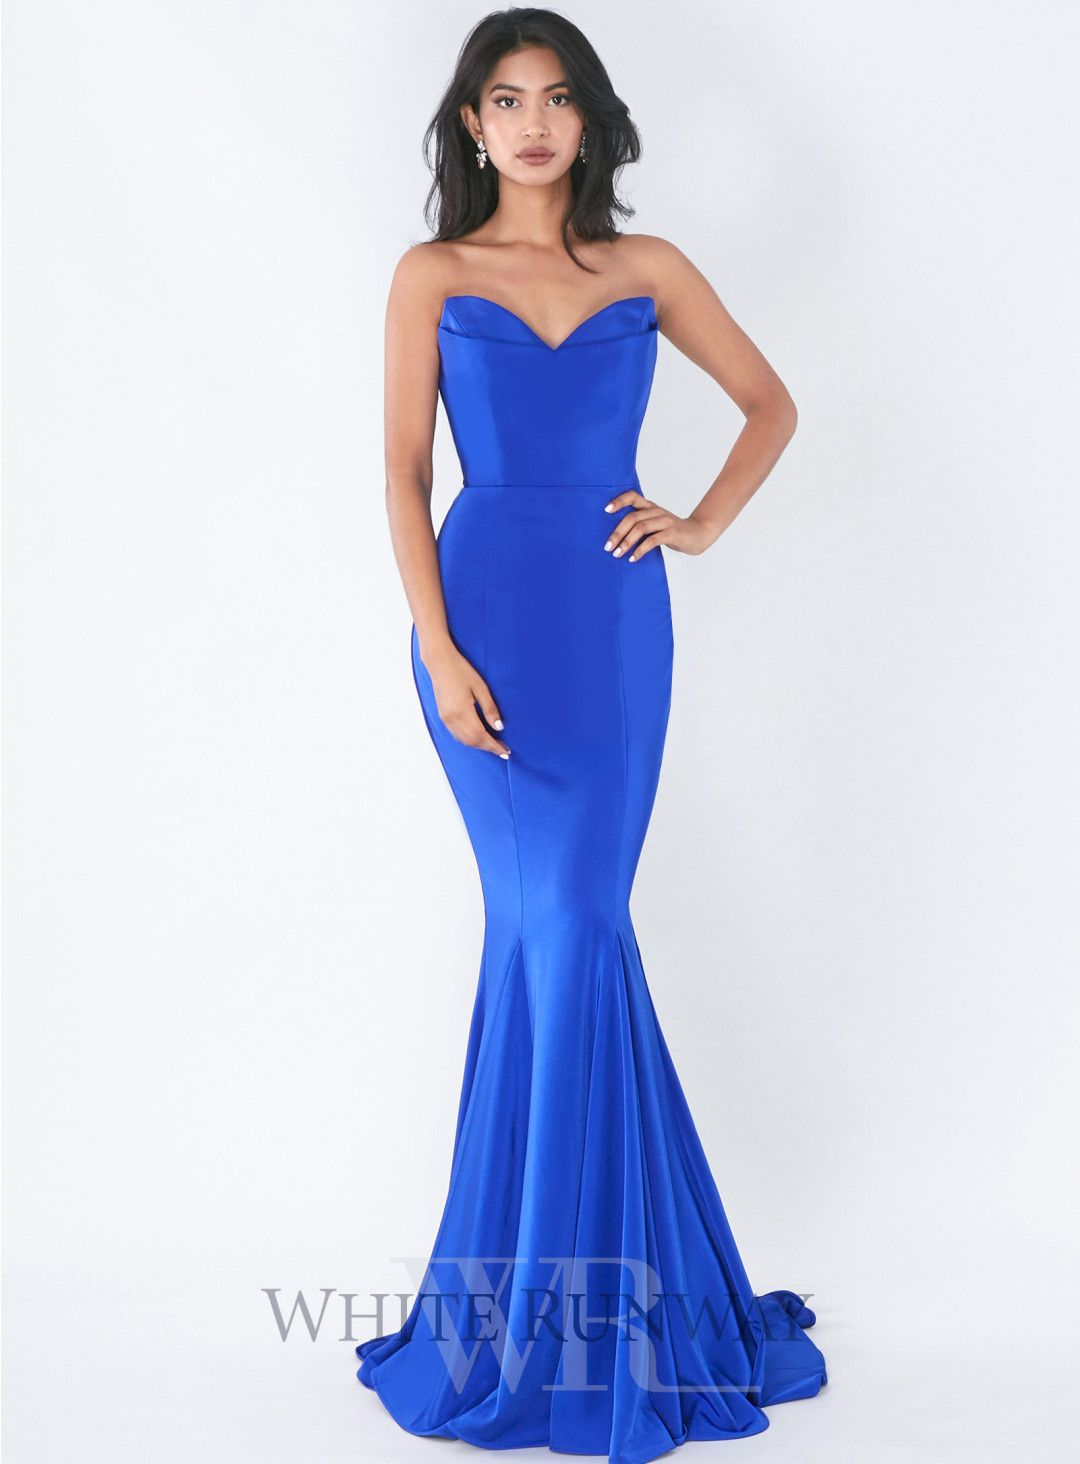 Lawrence gown a gorgeous full length dress by jadore a sweetheart